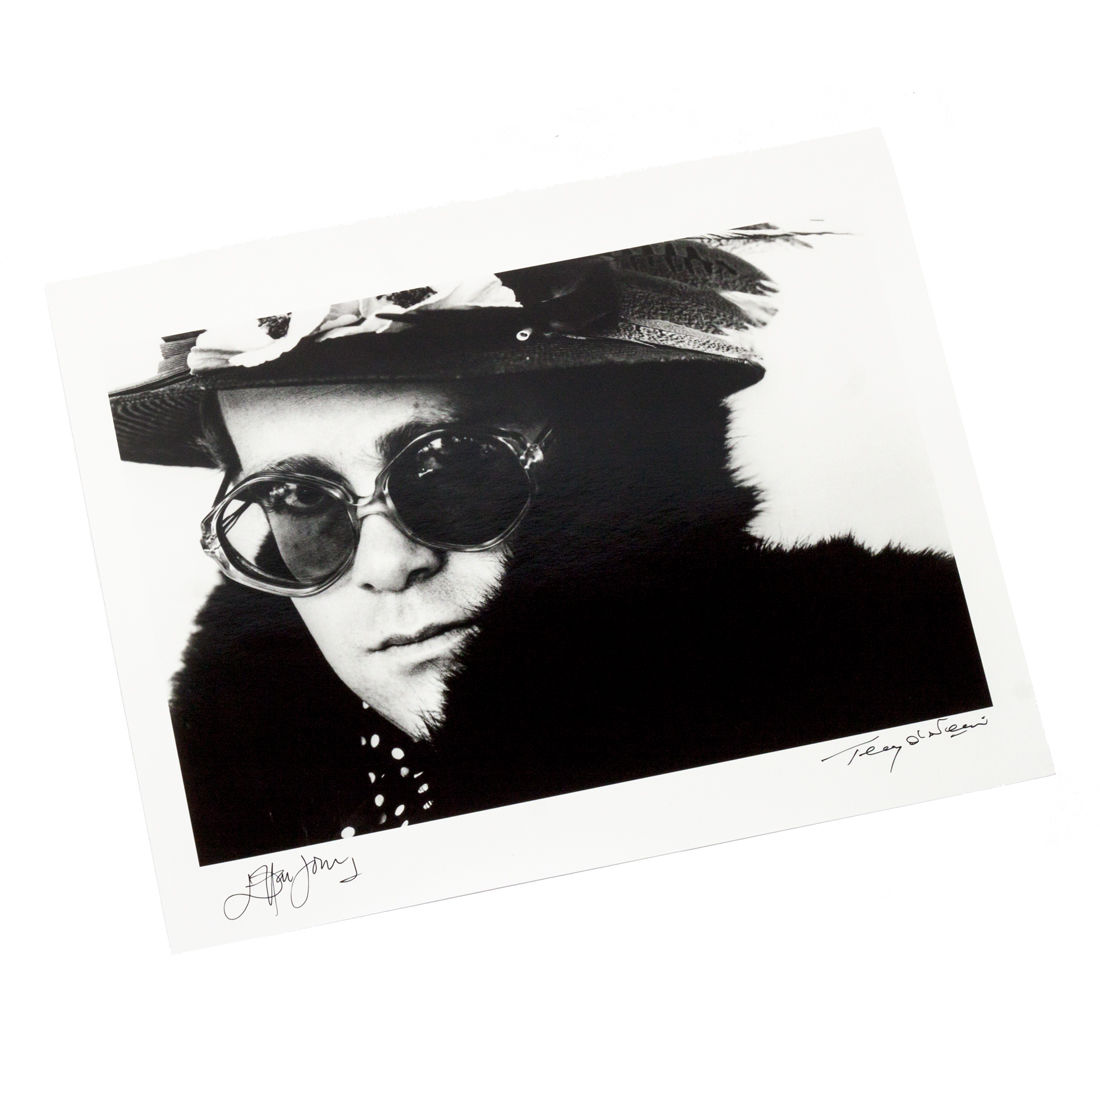 Elton John: No.50 of 50 Limited Edition Fine Art Print – Signed by Elton John & Terry O'Neill (16x20)